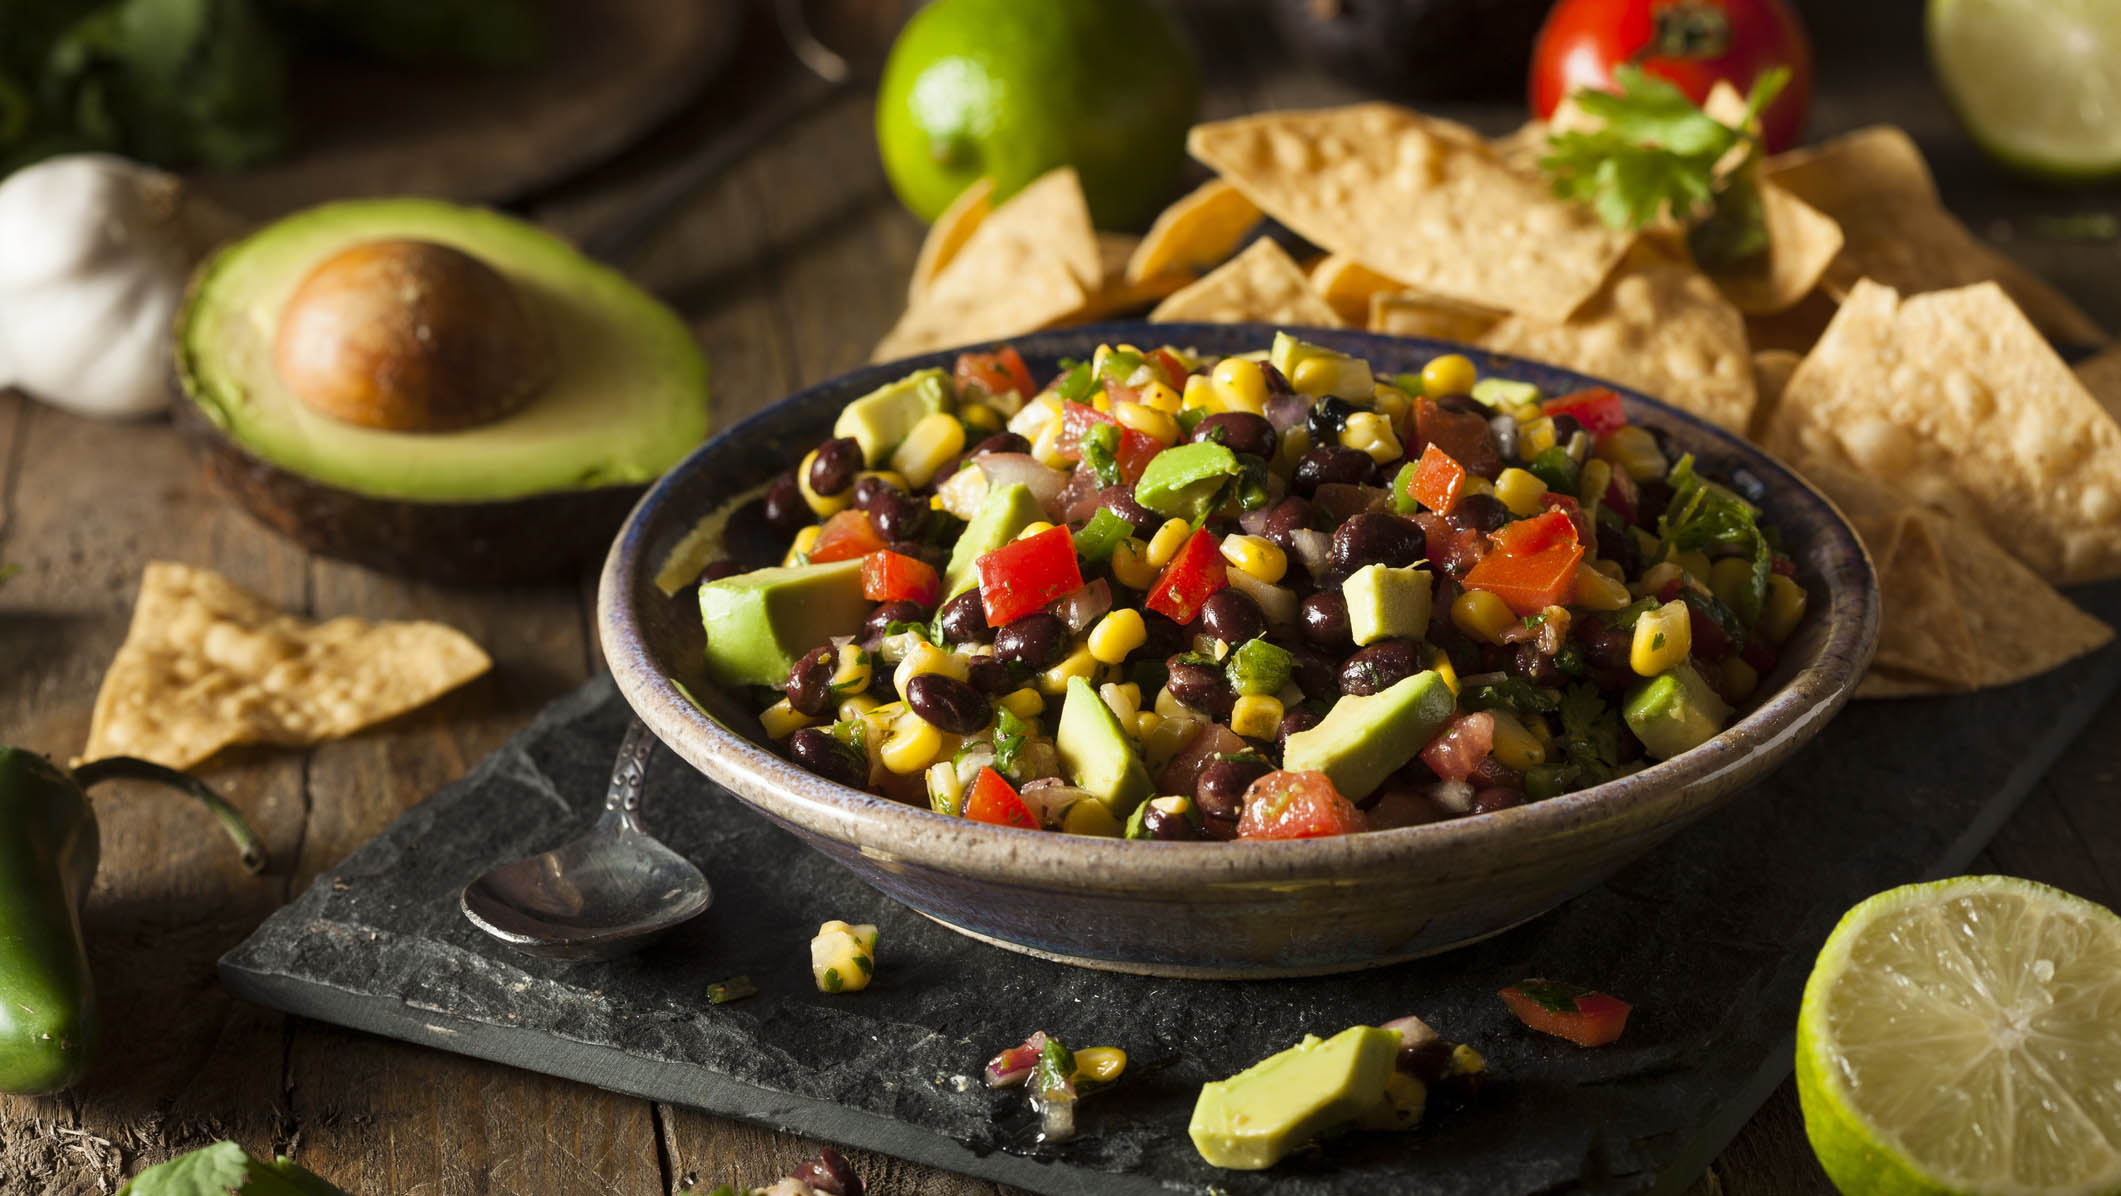 Healthy Mexican dip and chips